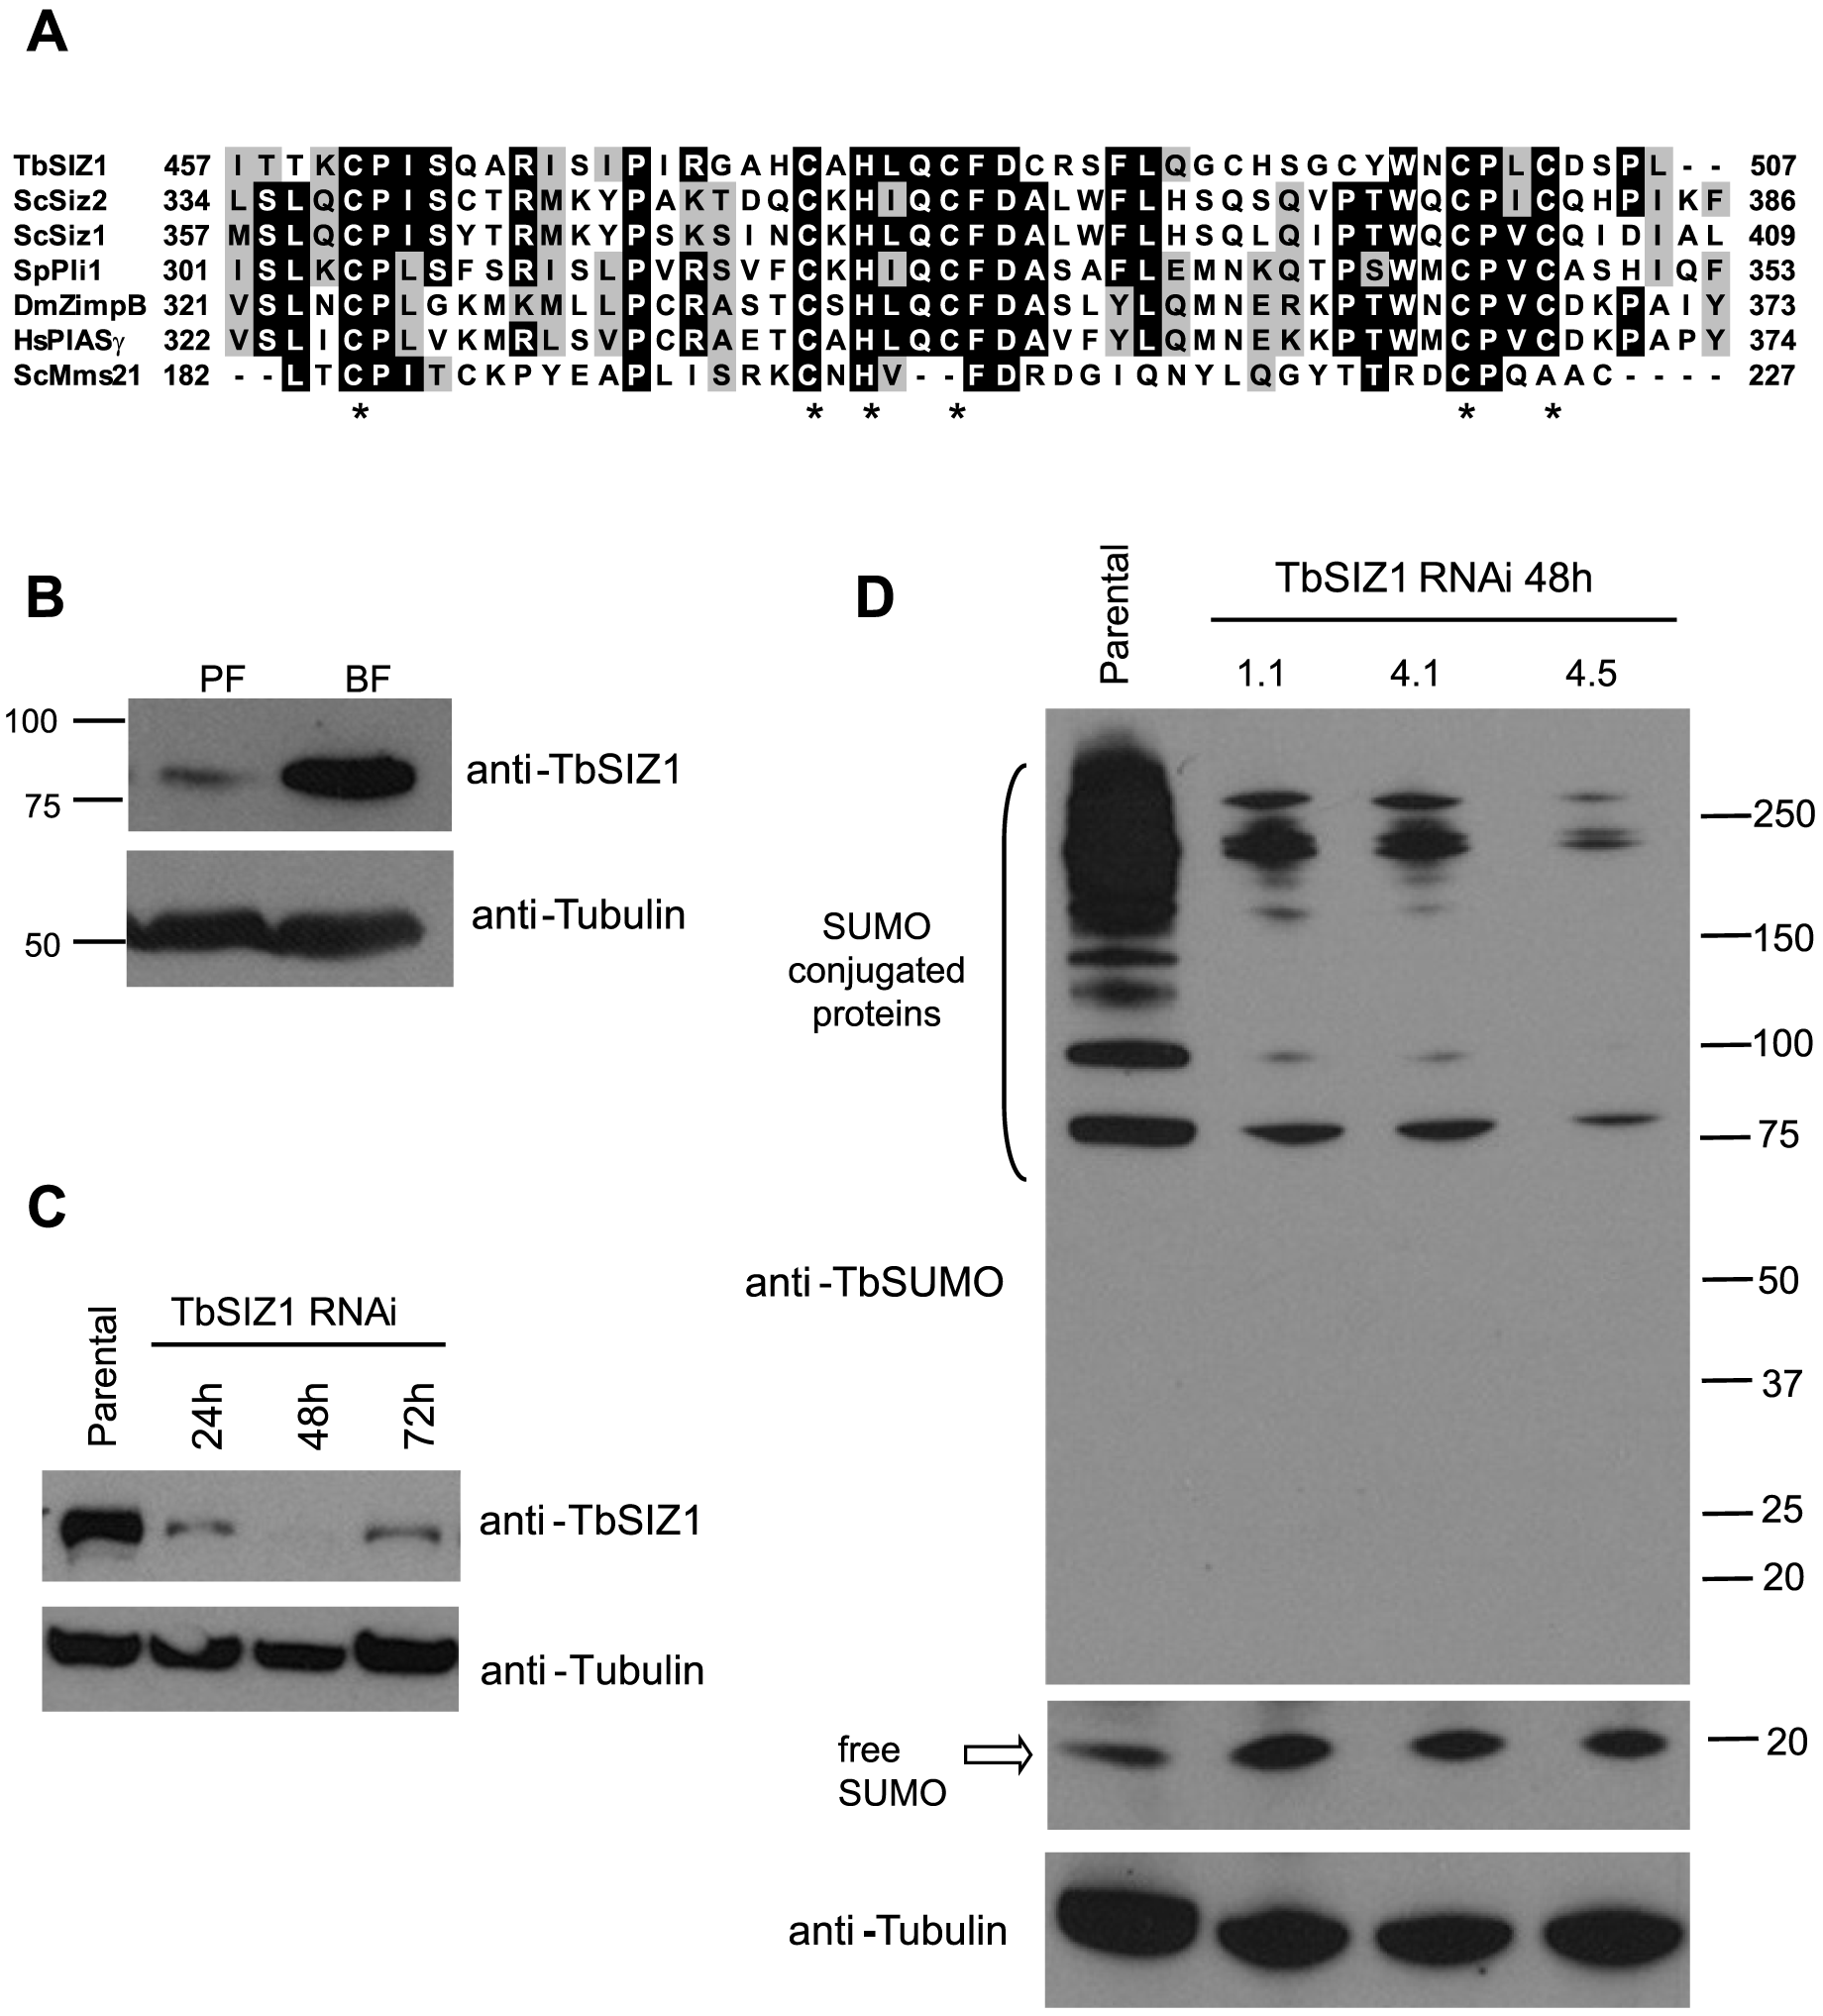 Identification and functional analysis of the SUMO ligase TbSIZ1.